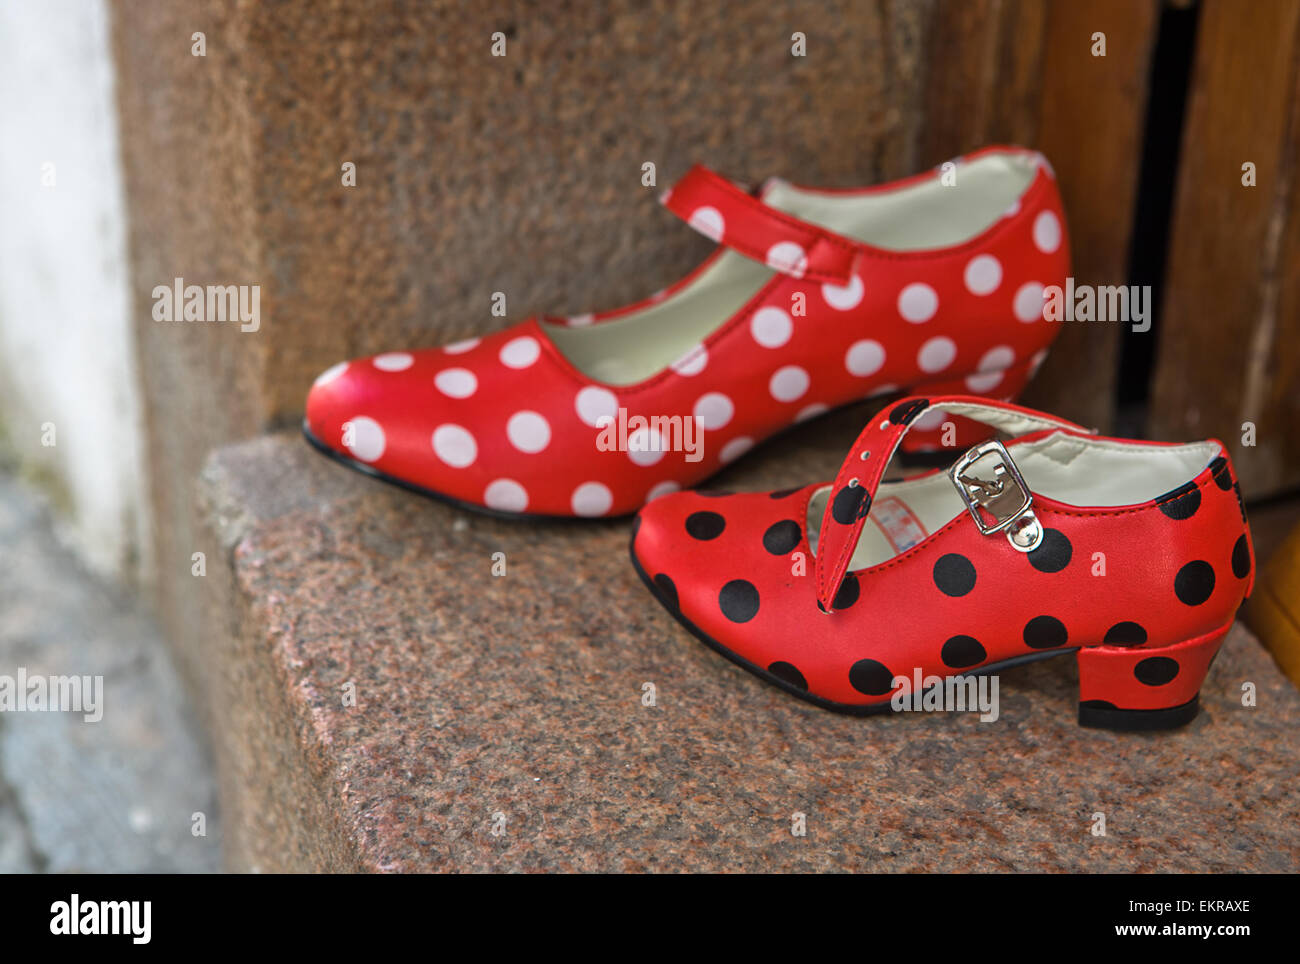 Gypsy red shoes with polka dot spots in street market - Stock Image